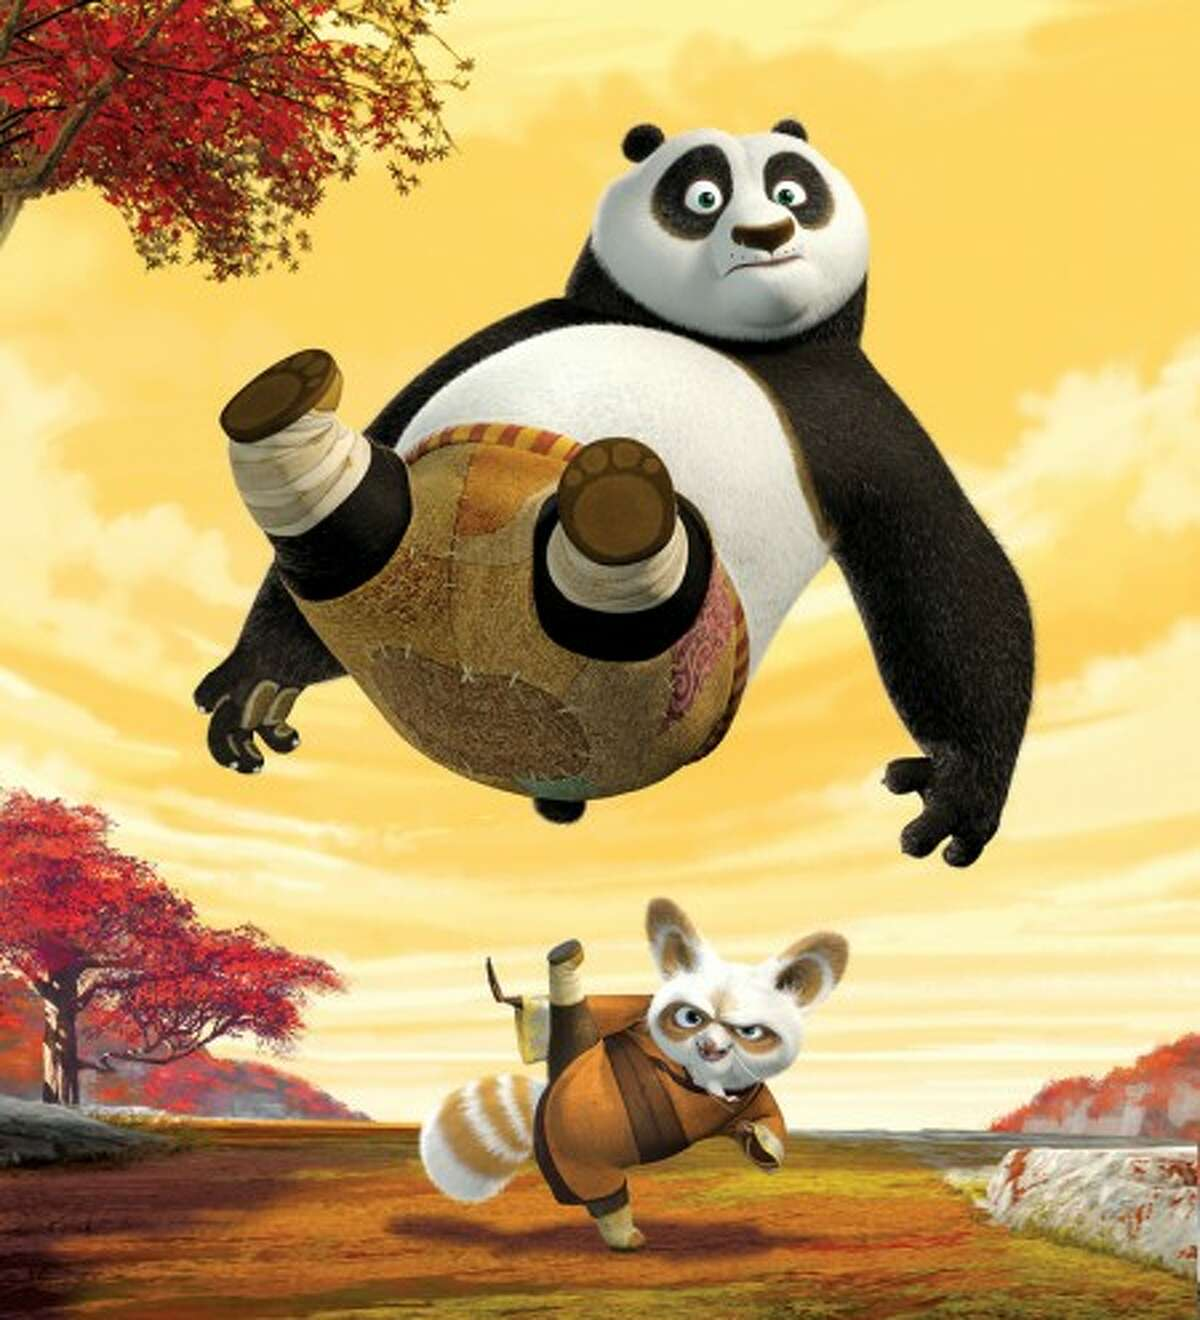 0803412 (BC-ENW-SUMMER) Unexpectedly chosen to fulfill an ancient prophecy and train in the art of Kung Fu, giant panda Po (above, JACK BLACK) begins his study under Master Shifu (below, DUSTIN HOFFMAN), the trainer of the legendary Furious Five, in DreamWorks Animation